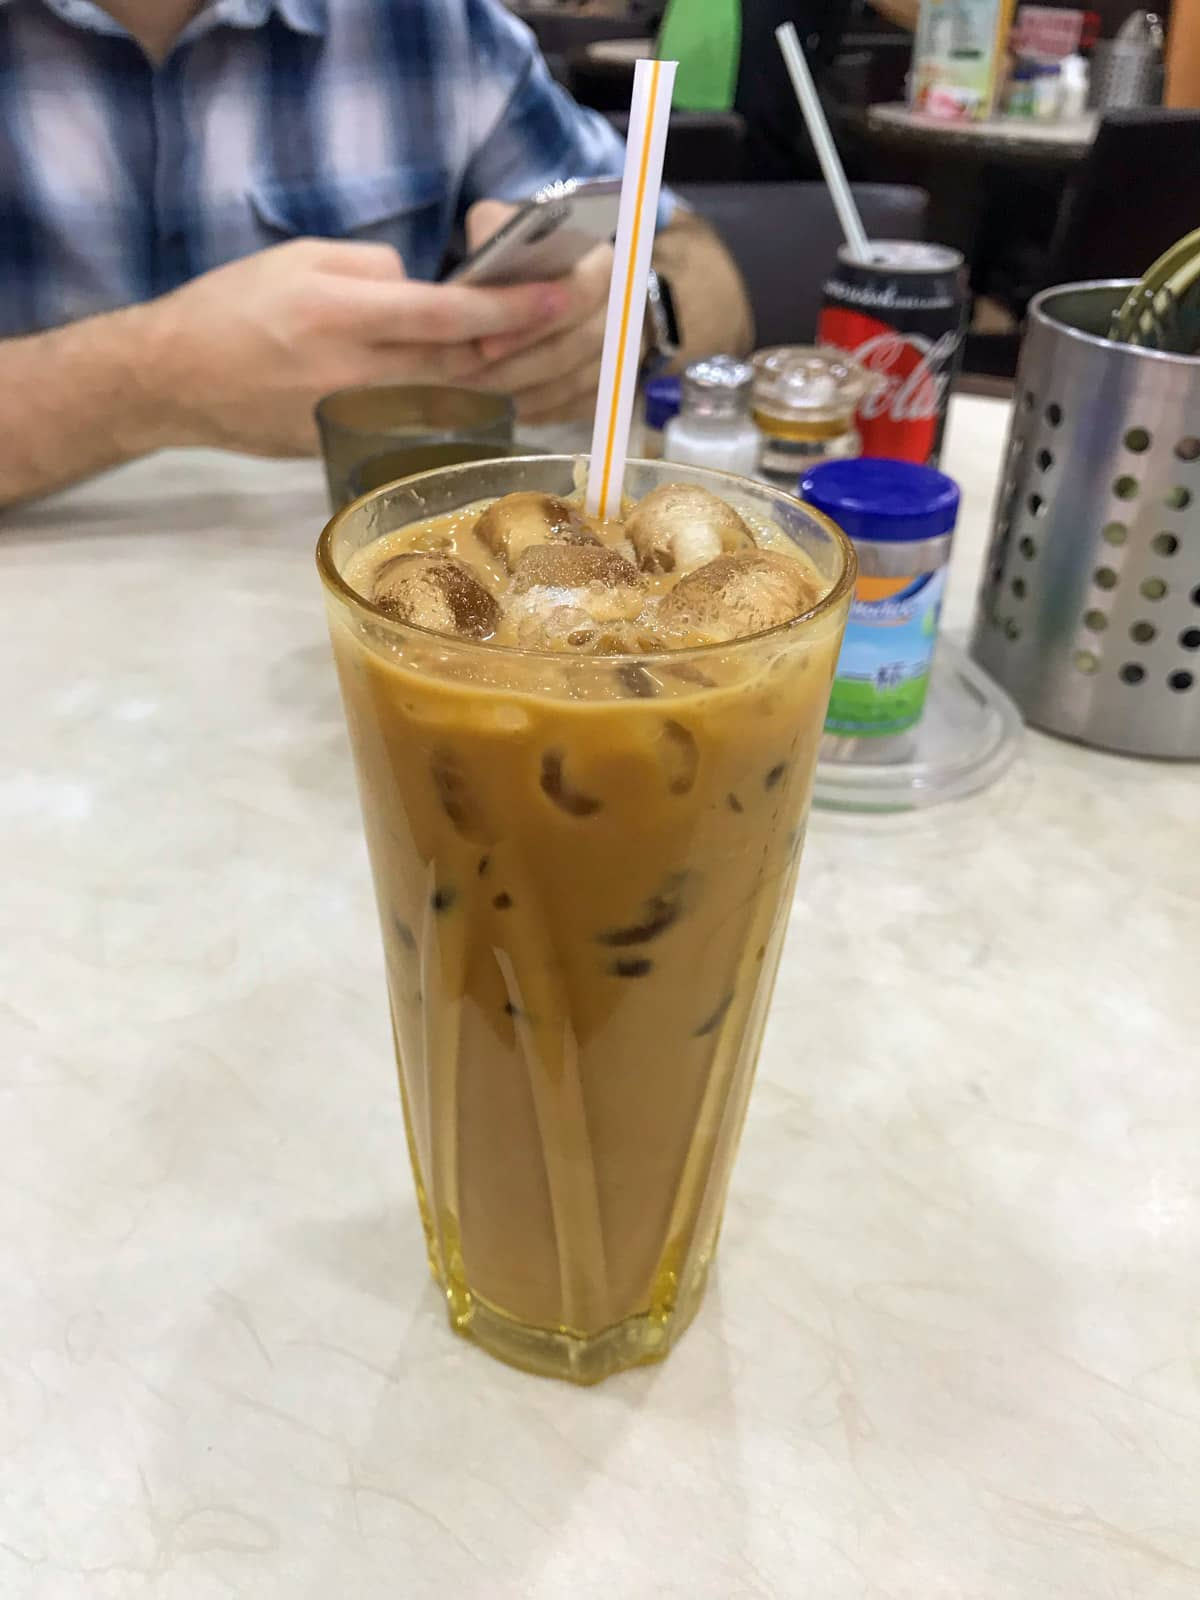 A tall glass of Hong Kong milk tea, which is iced and has a tan brown colour to it